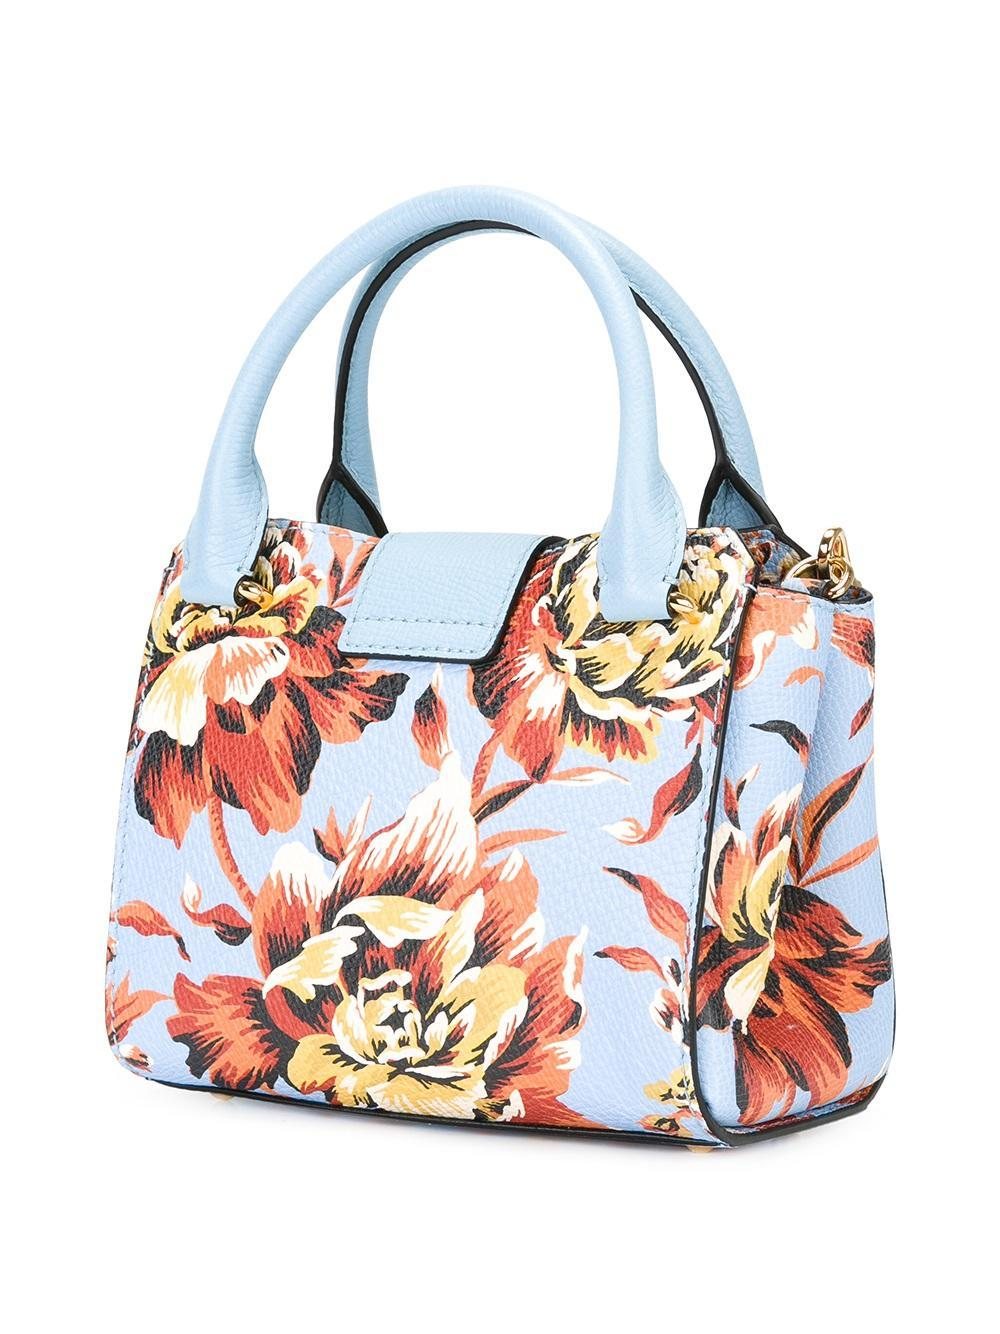 Burberry Floral-print Tote Bag In Blue | Lyst